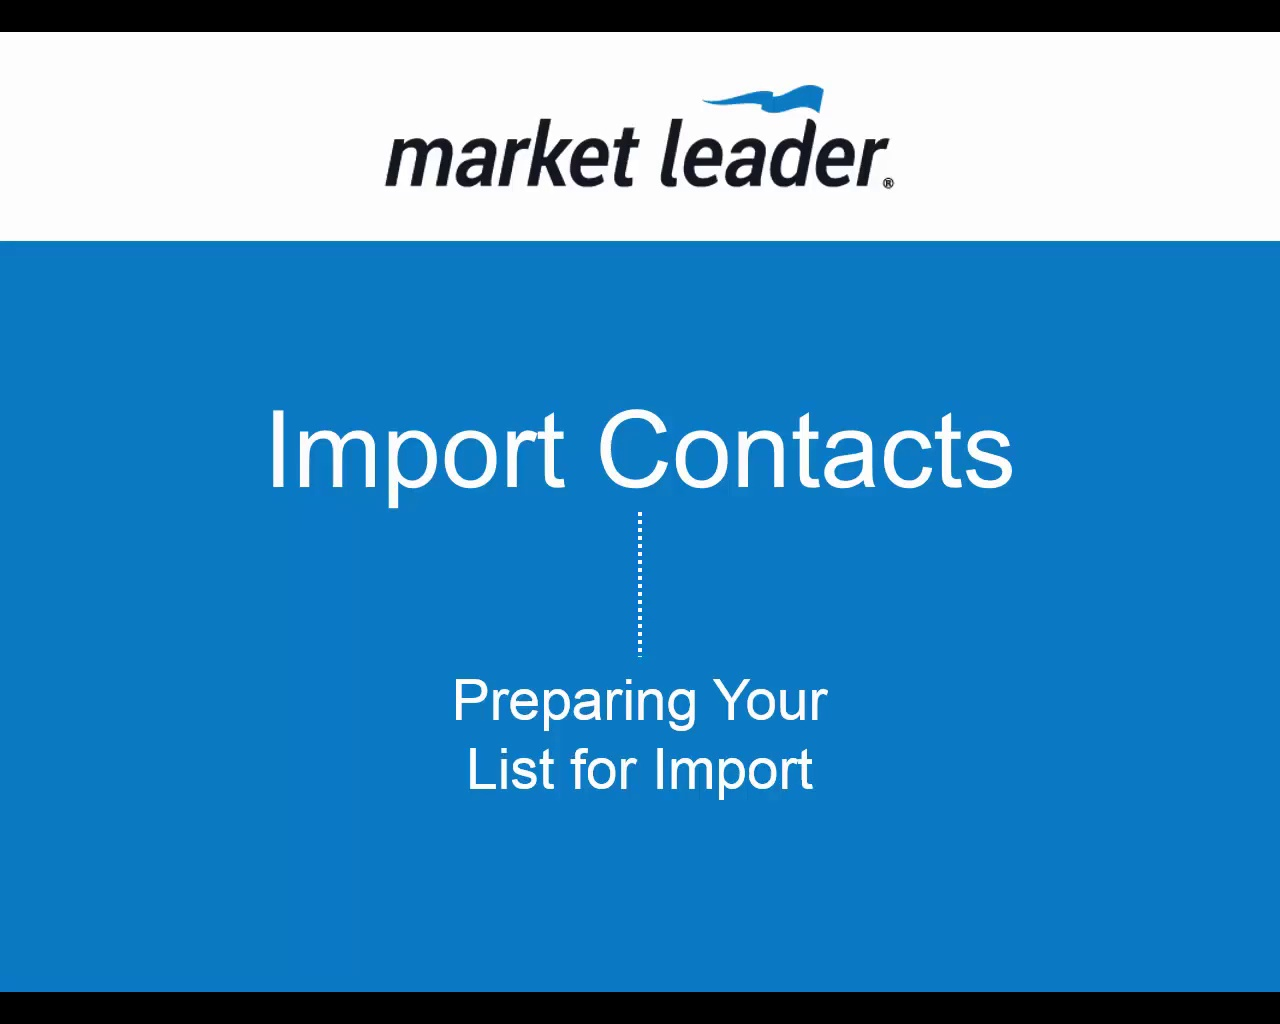 Import Contacts - Preparing Your File for Import